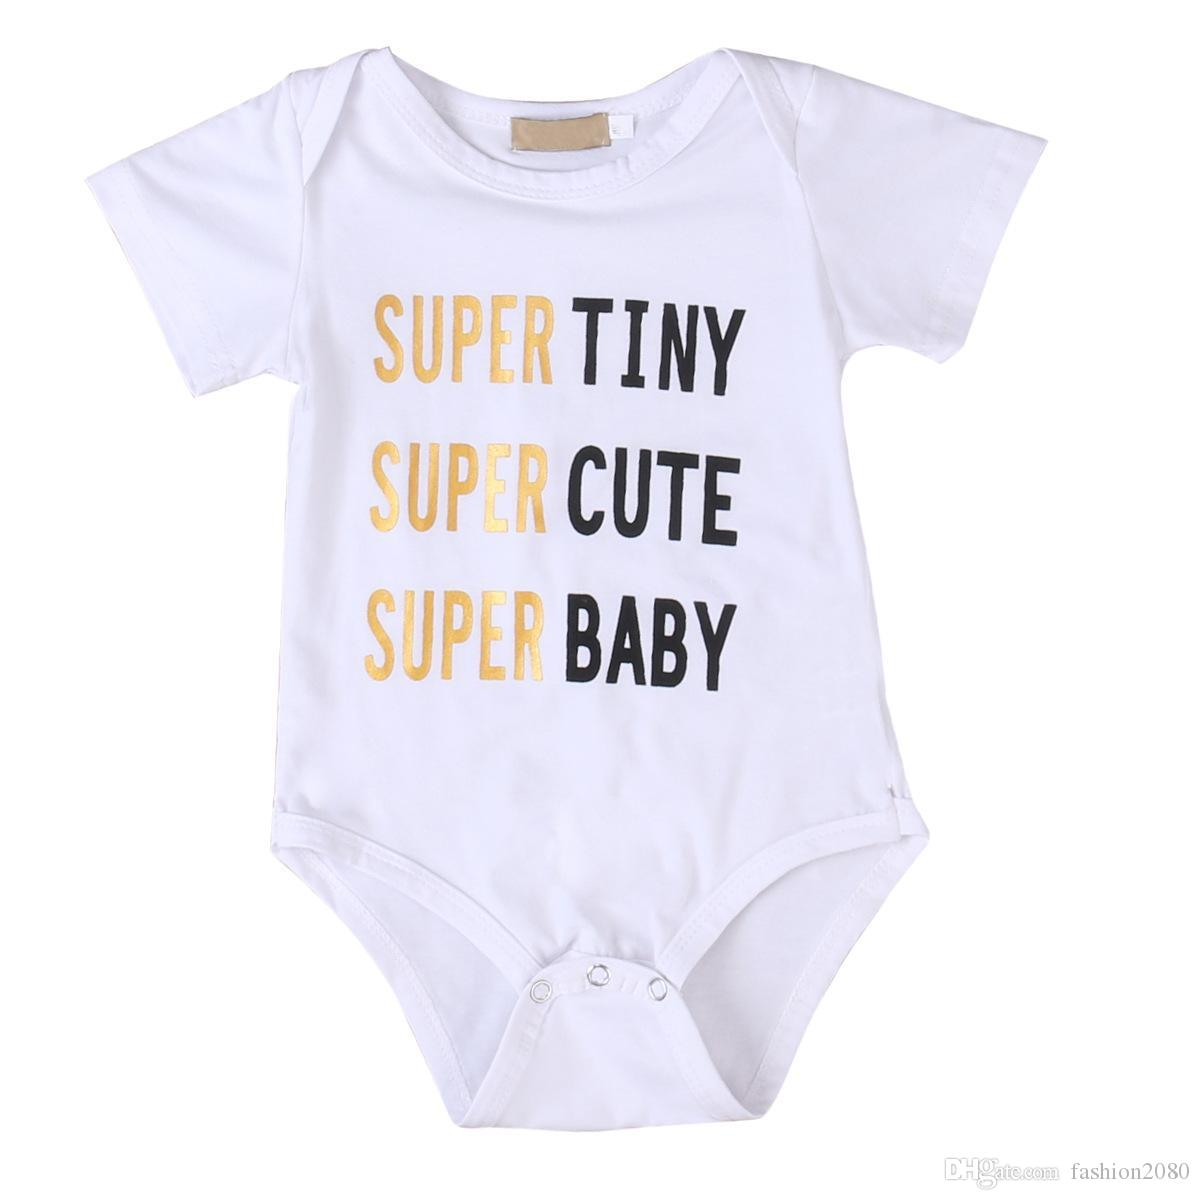 7c1e7aa36143d Super Mom Kid Baby Famiy Matching T Shirt Kids Tee Letter Bodysuit Newborn  Infant Babies Boys Girls Clothes Outfits Wholesale Matching Sibling Clothes  ...